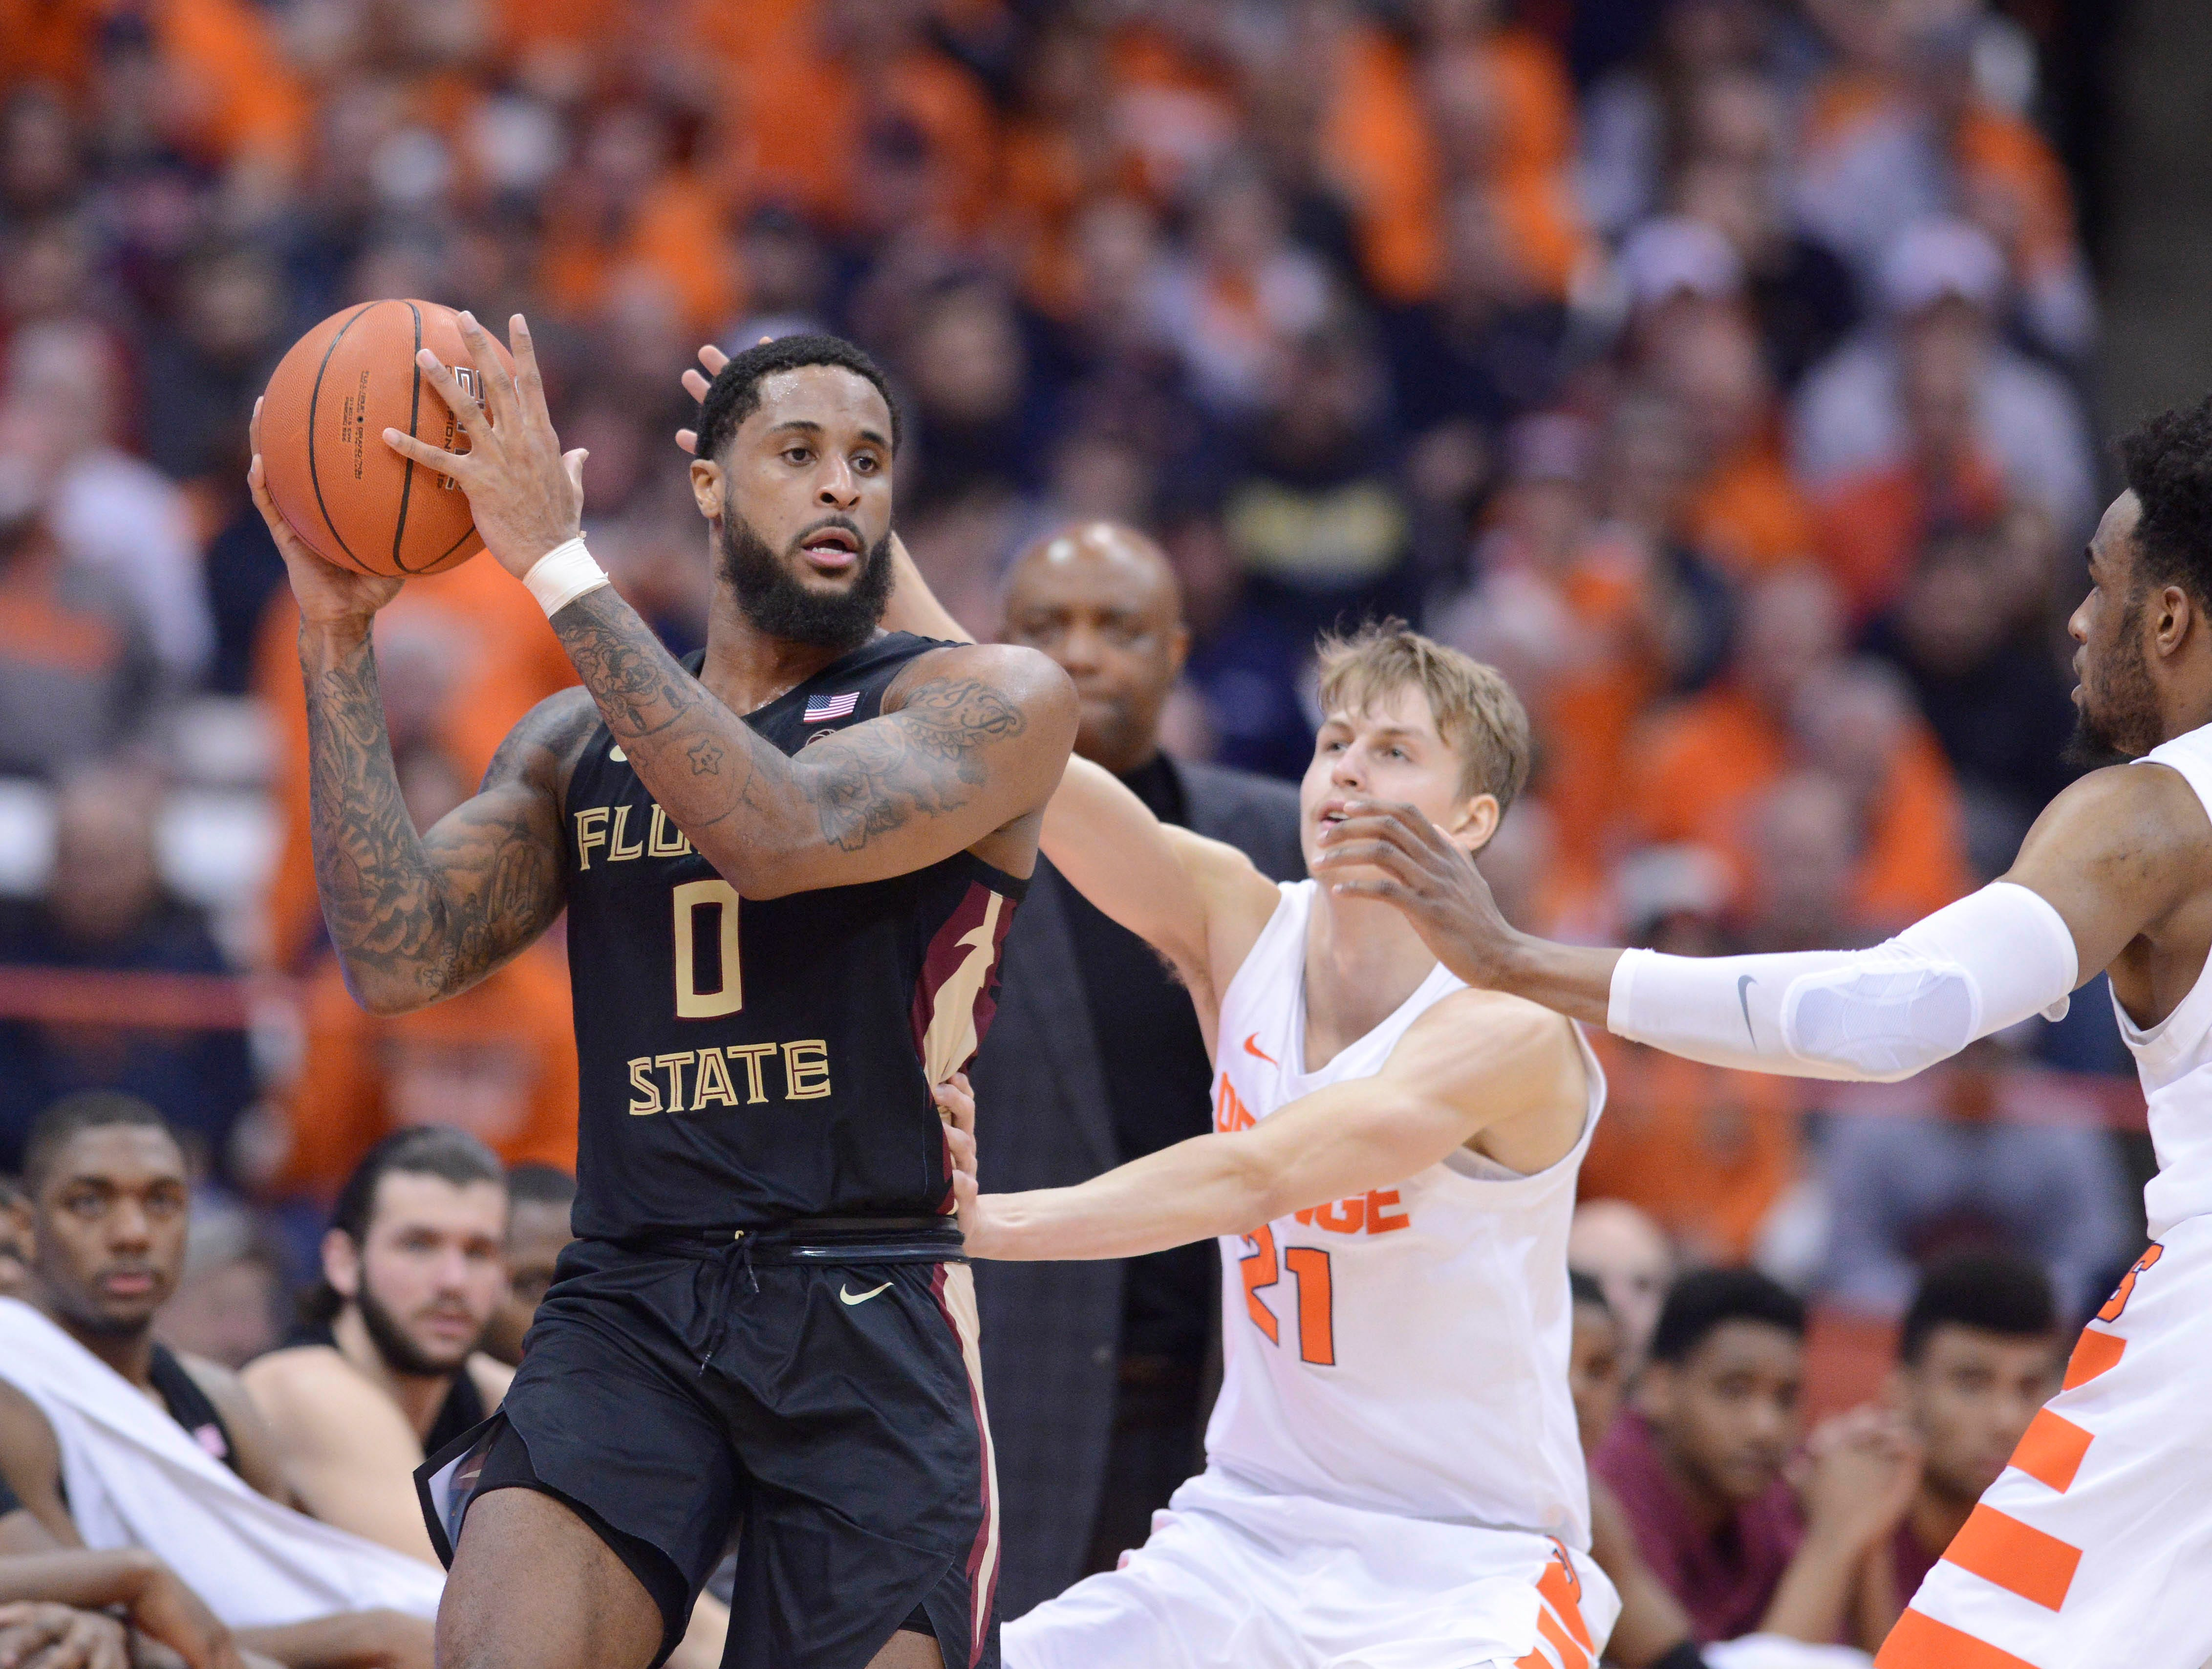 Feb 5, 2019; Syracuse, NY, USA; Florida State Seminoles forward Phil Cofer (0) controls the ball in front of Syracuse Orange forward Marek Dolezaj (21) and forward Oshae Brissett in the second half at the Carrier Dome. Mandatory Credit: Mark Konezny-USA TODAY Sports